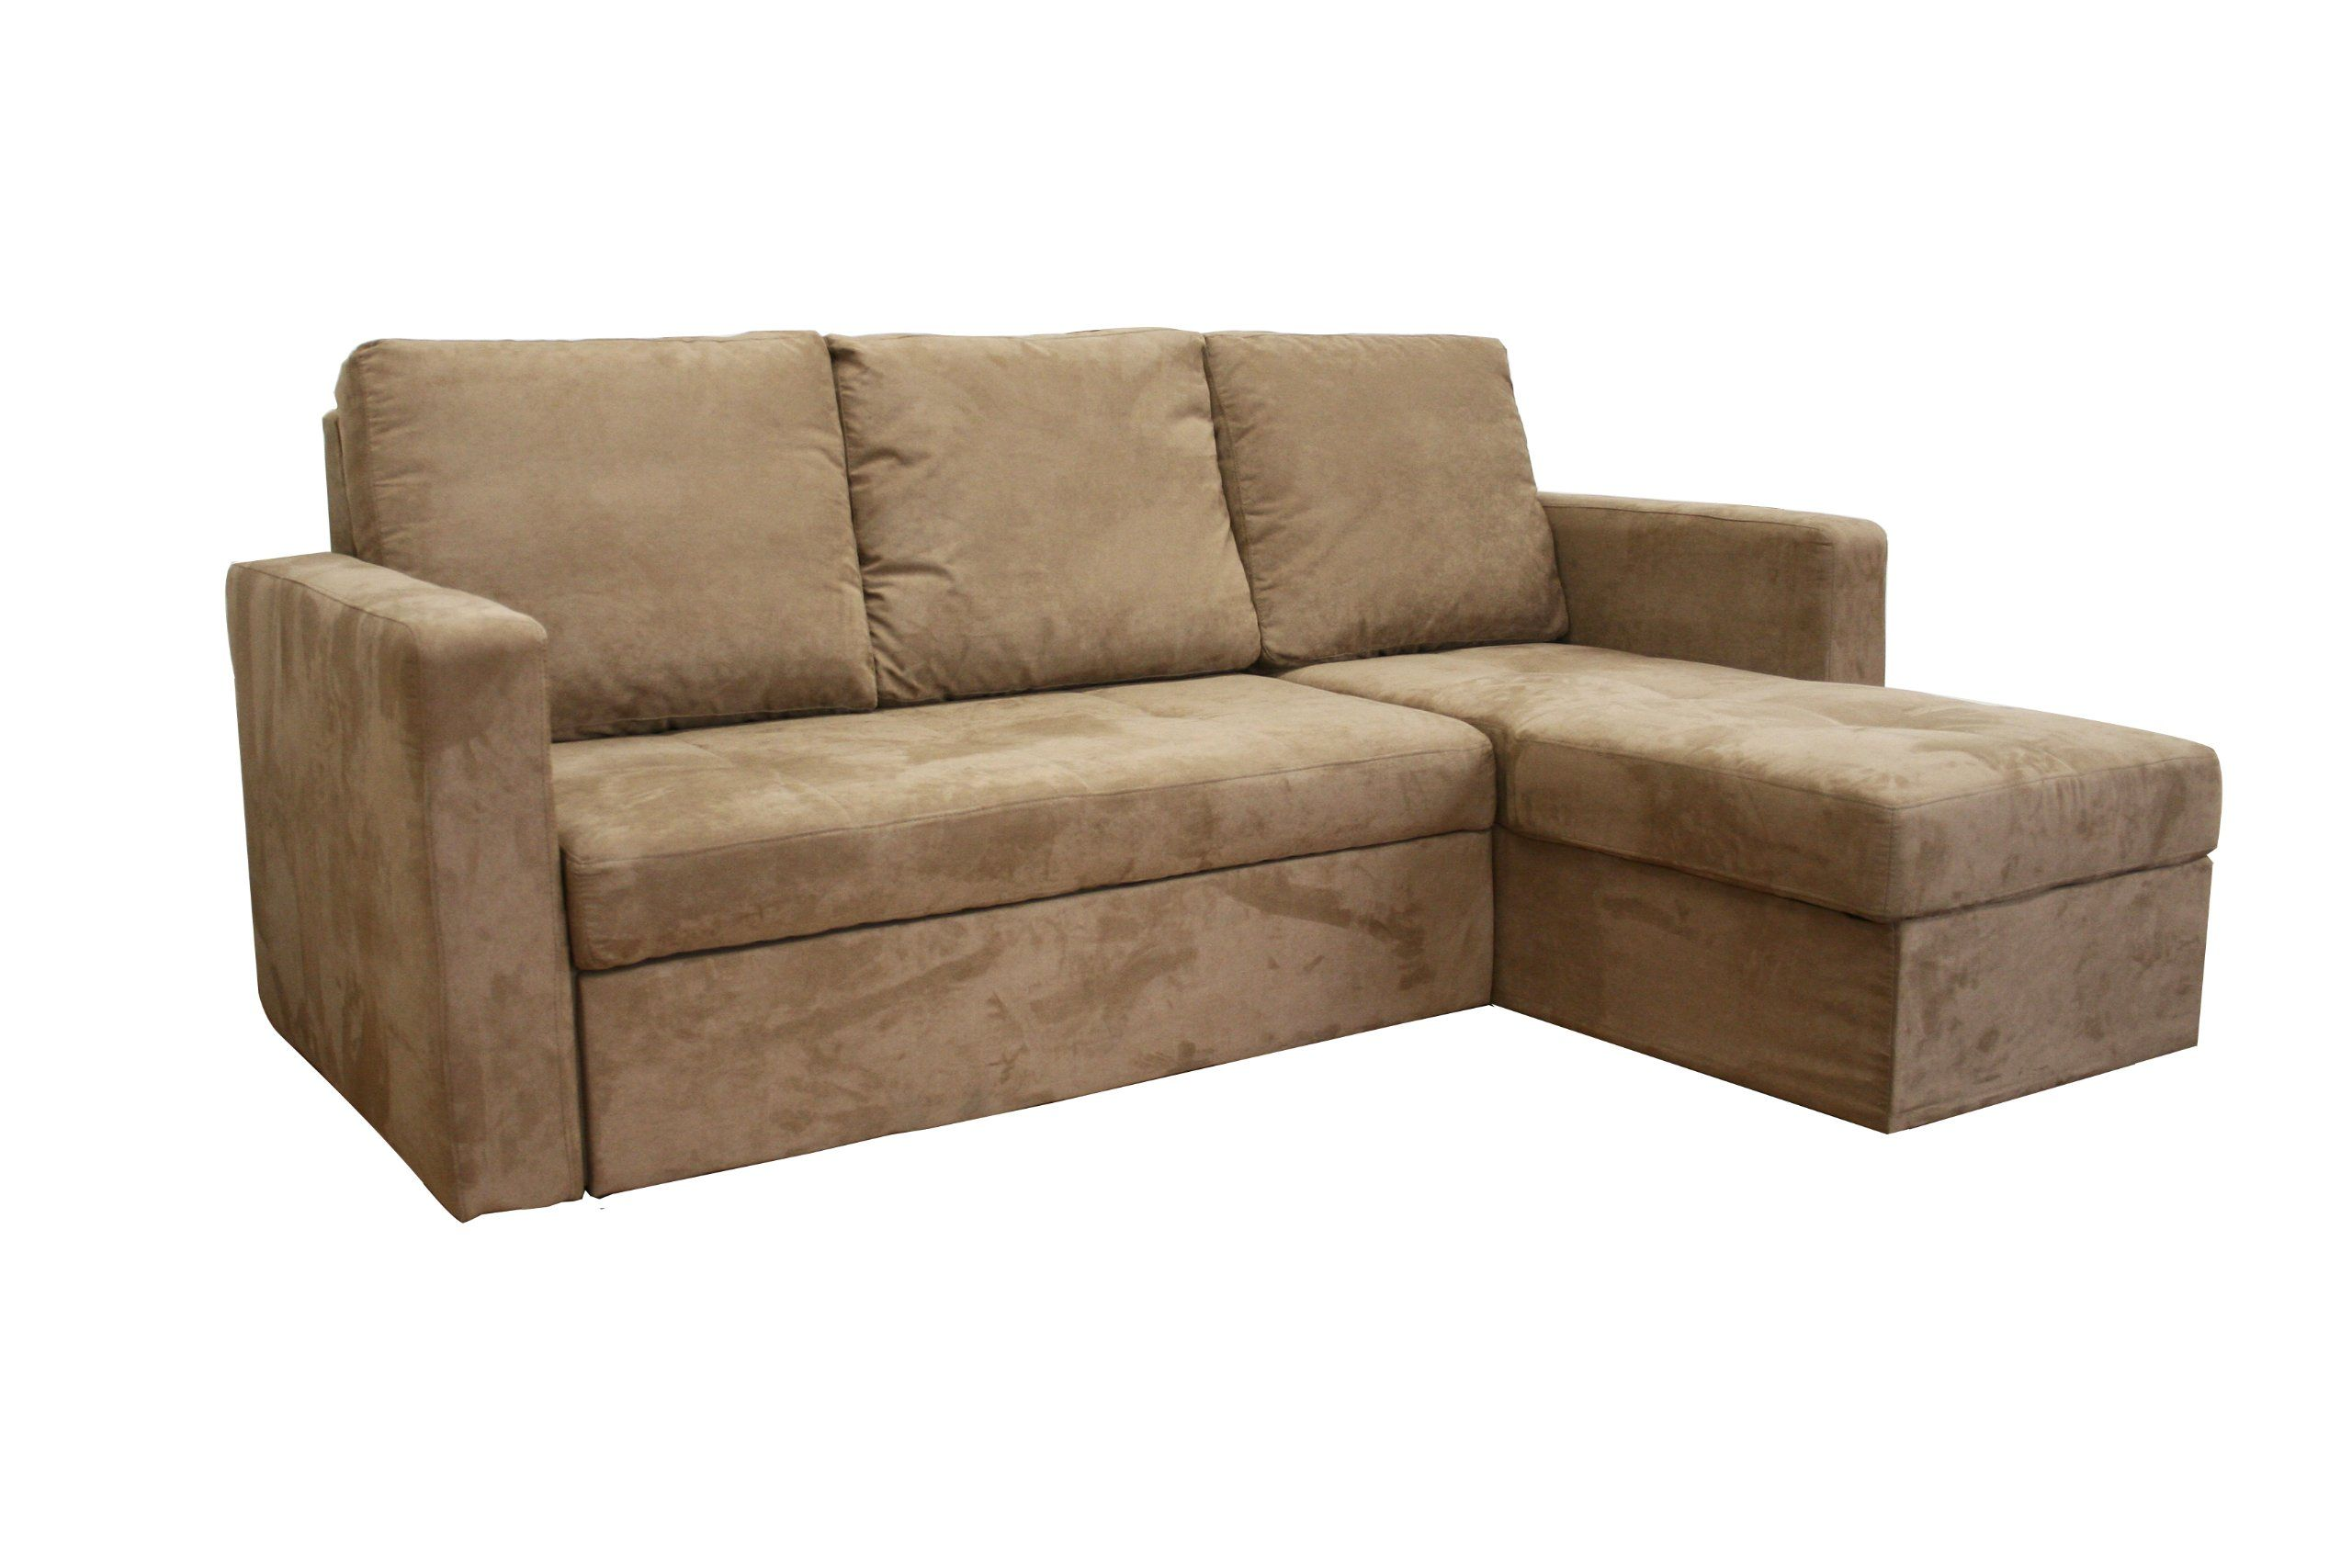 linden tan microfiber convertible sectional sofa bed modern rh pinterest com Sectional Sofas with Sleeper Beds Contemporary Sectional Sofa Bed with Shelves